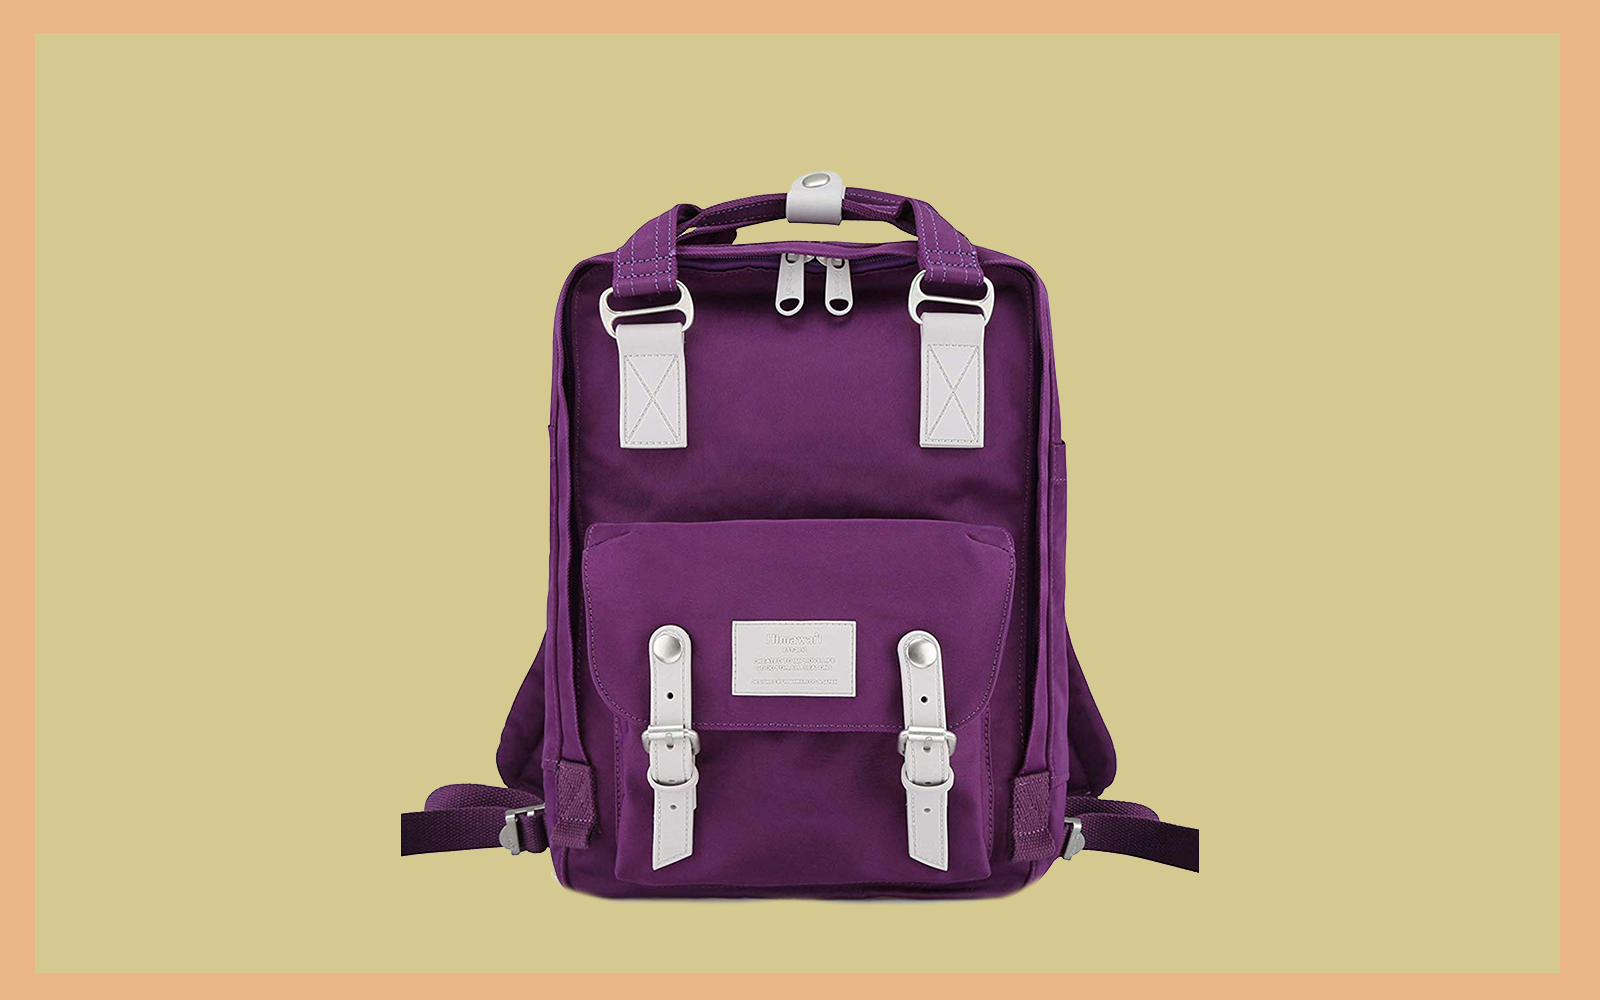 Himawari School Waterproof Backpack 14.9 Tout